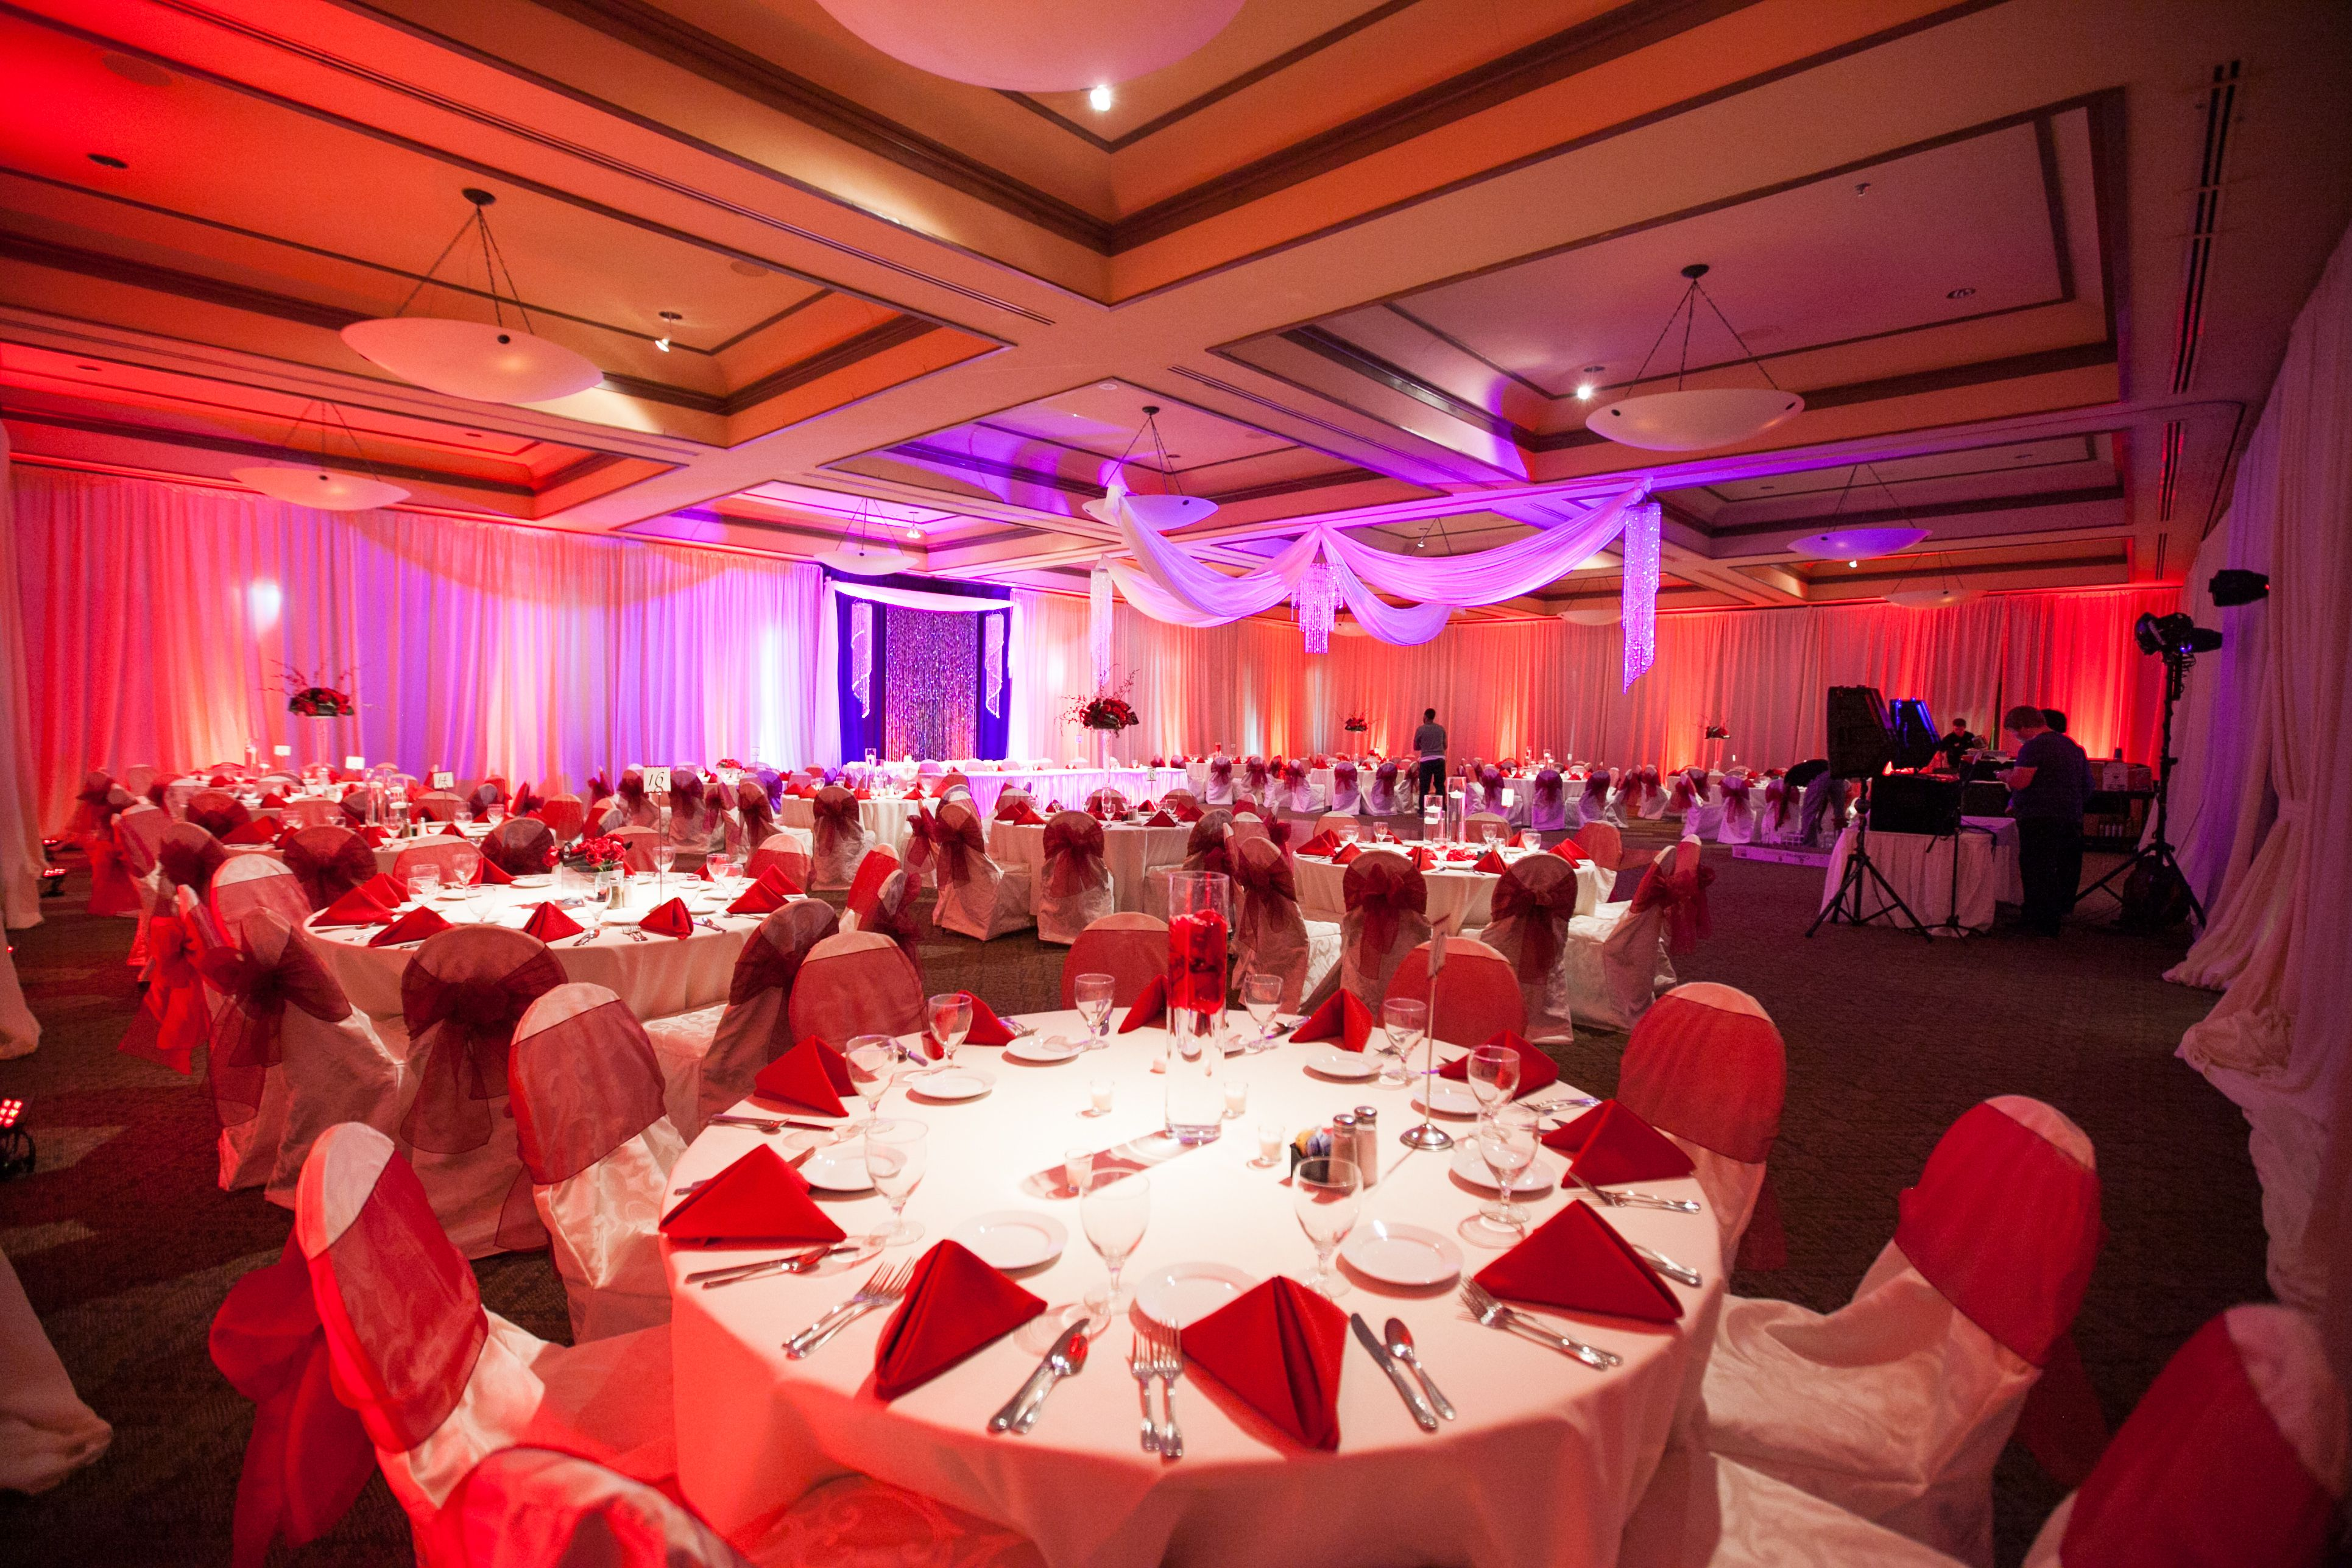 Red & White Reception | Wedding Receptions | Pinterest | Reception ...